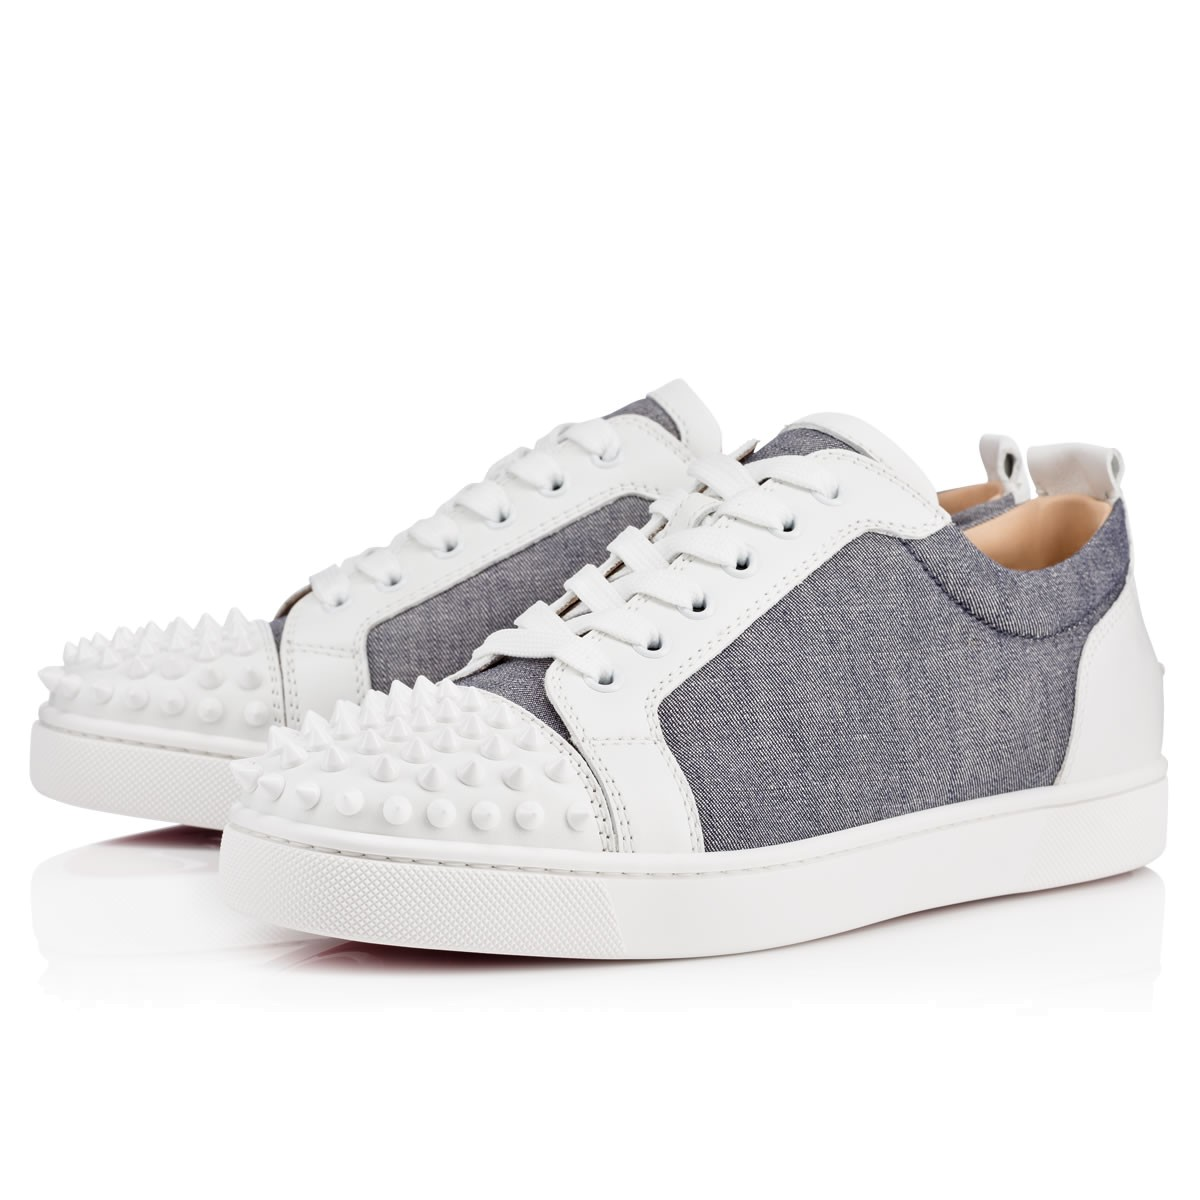 new style a27e6 ec7f2 Christian Louboutin men's Junior spike white and grey trainers